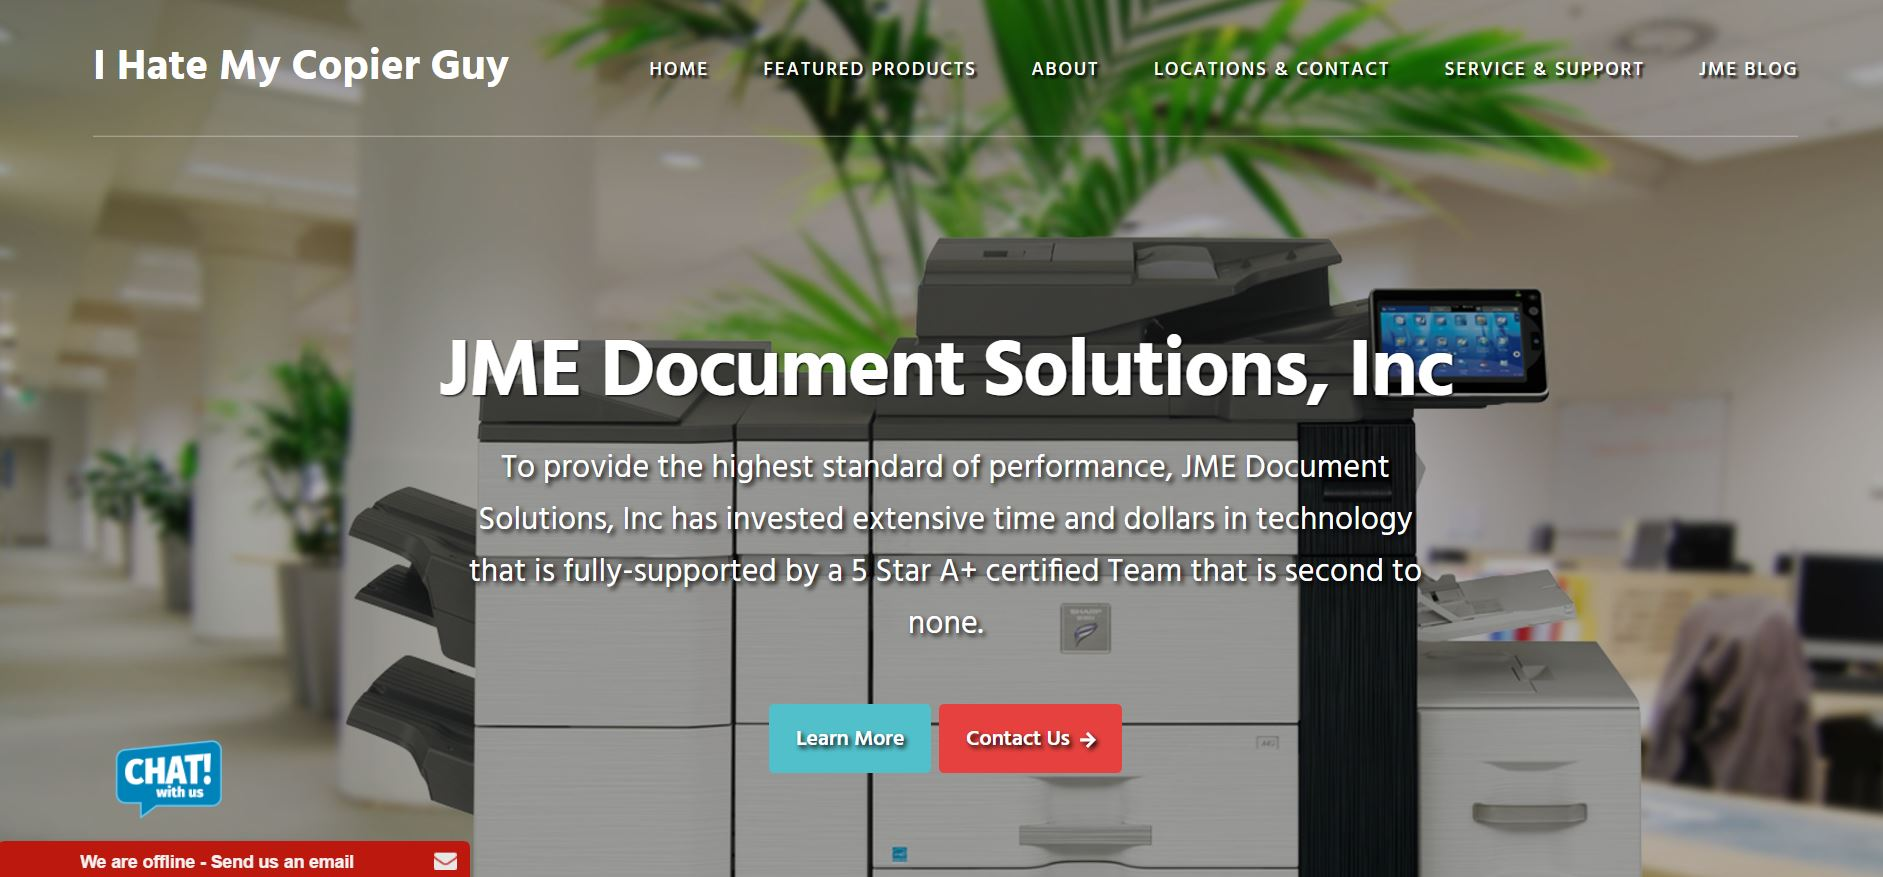 JME Document Solutions - MFP Company located in Nanuet, NY. Offering Sharp Multi-function printer sales and service. www.jmedocumentsolutions.com